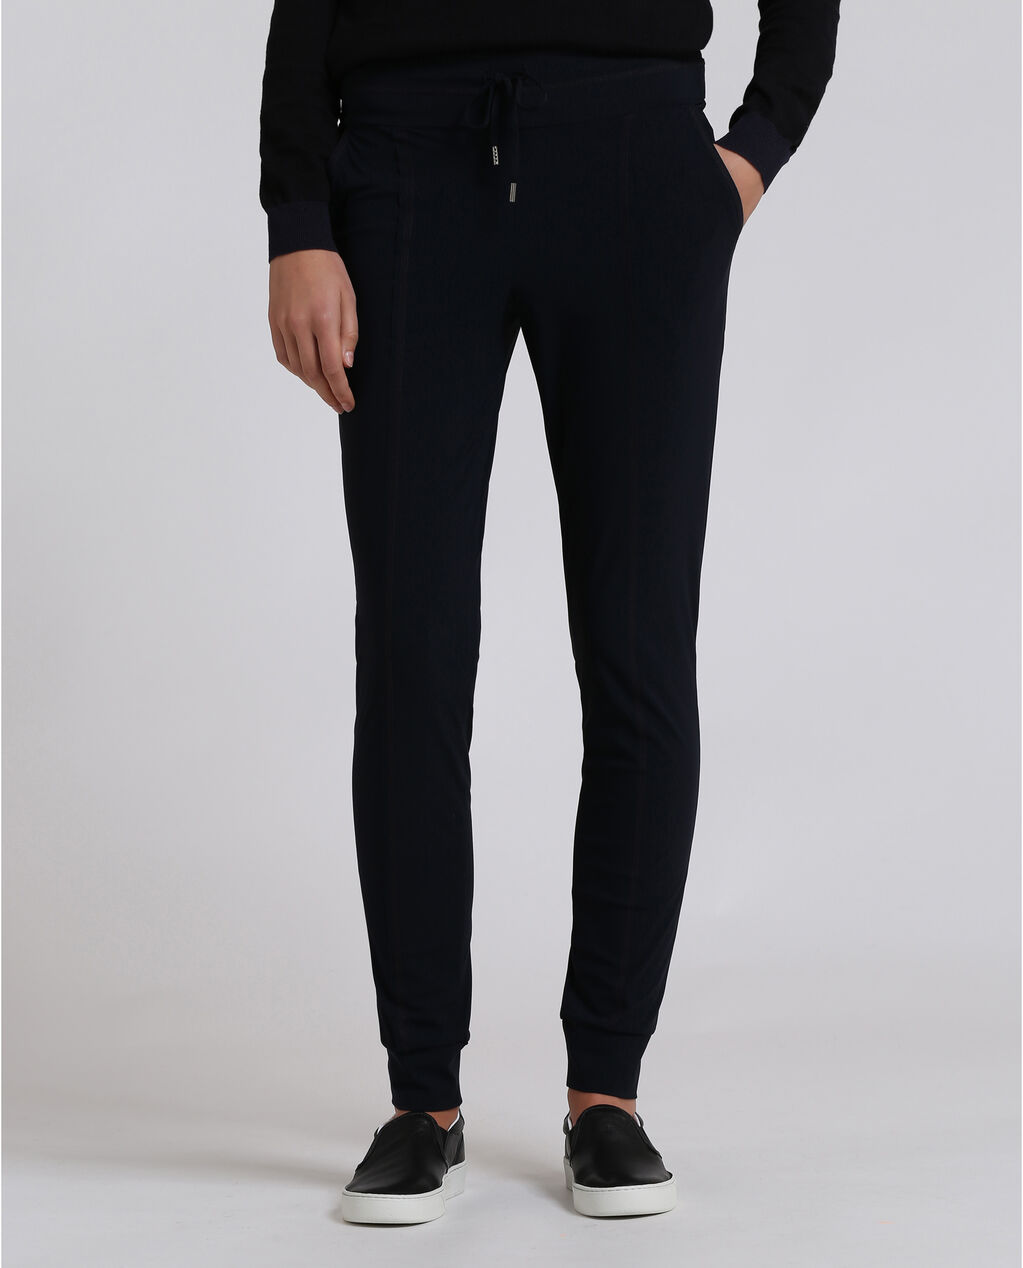 W'S Leisure Pant